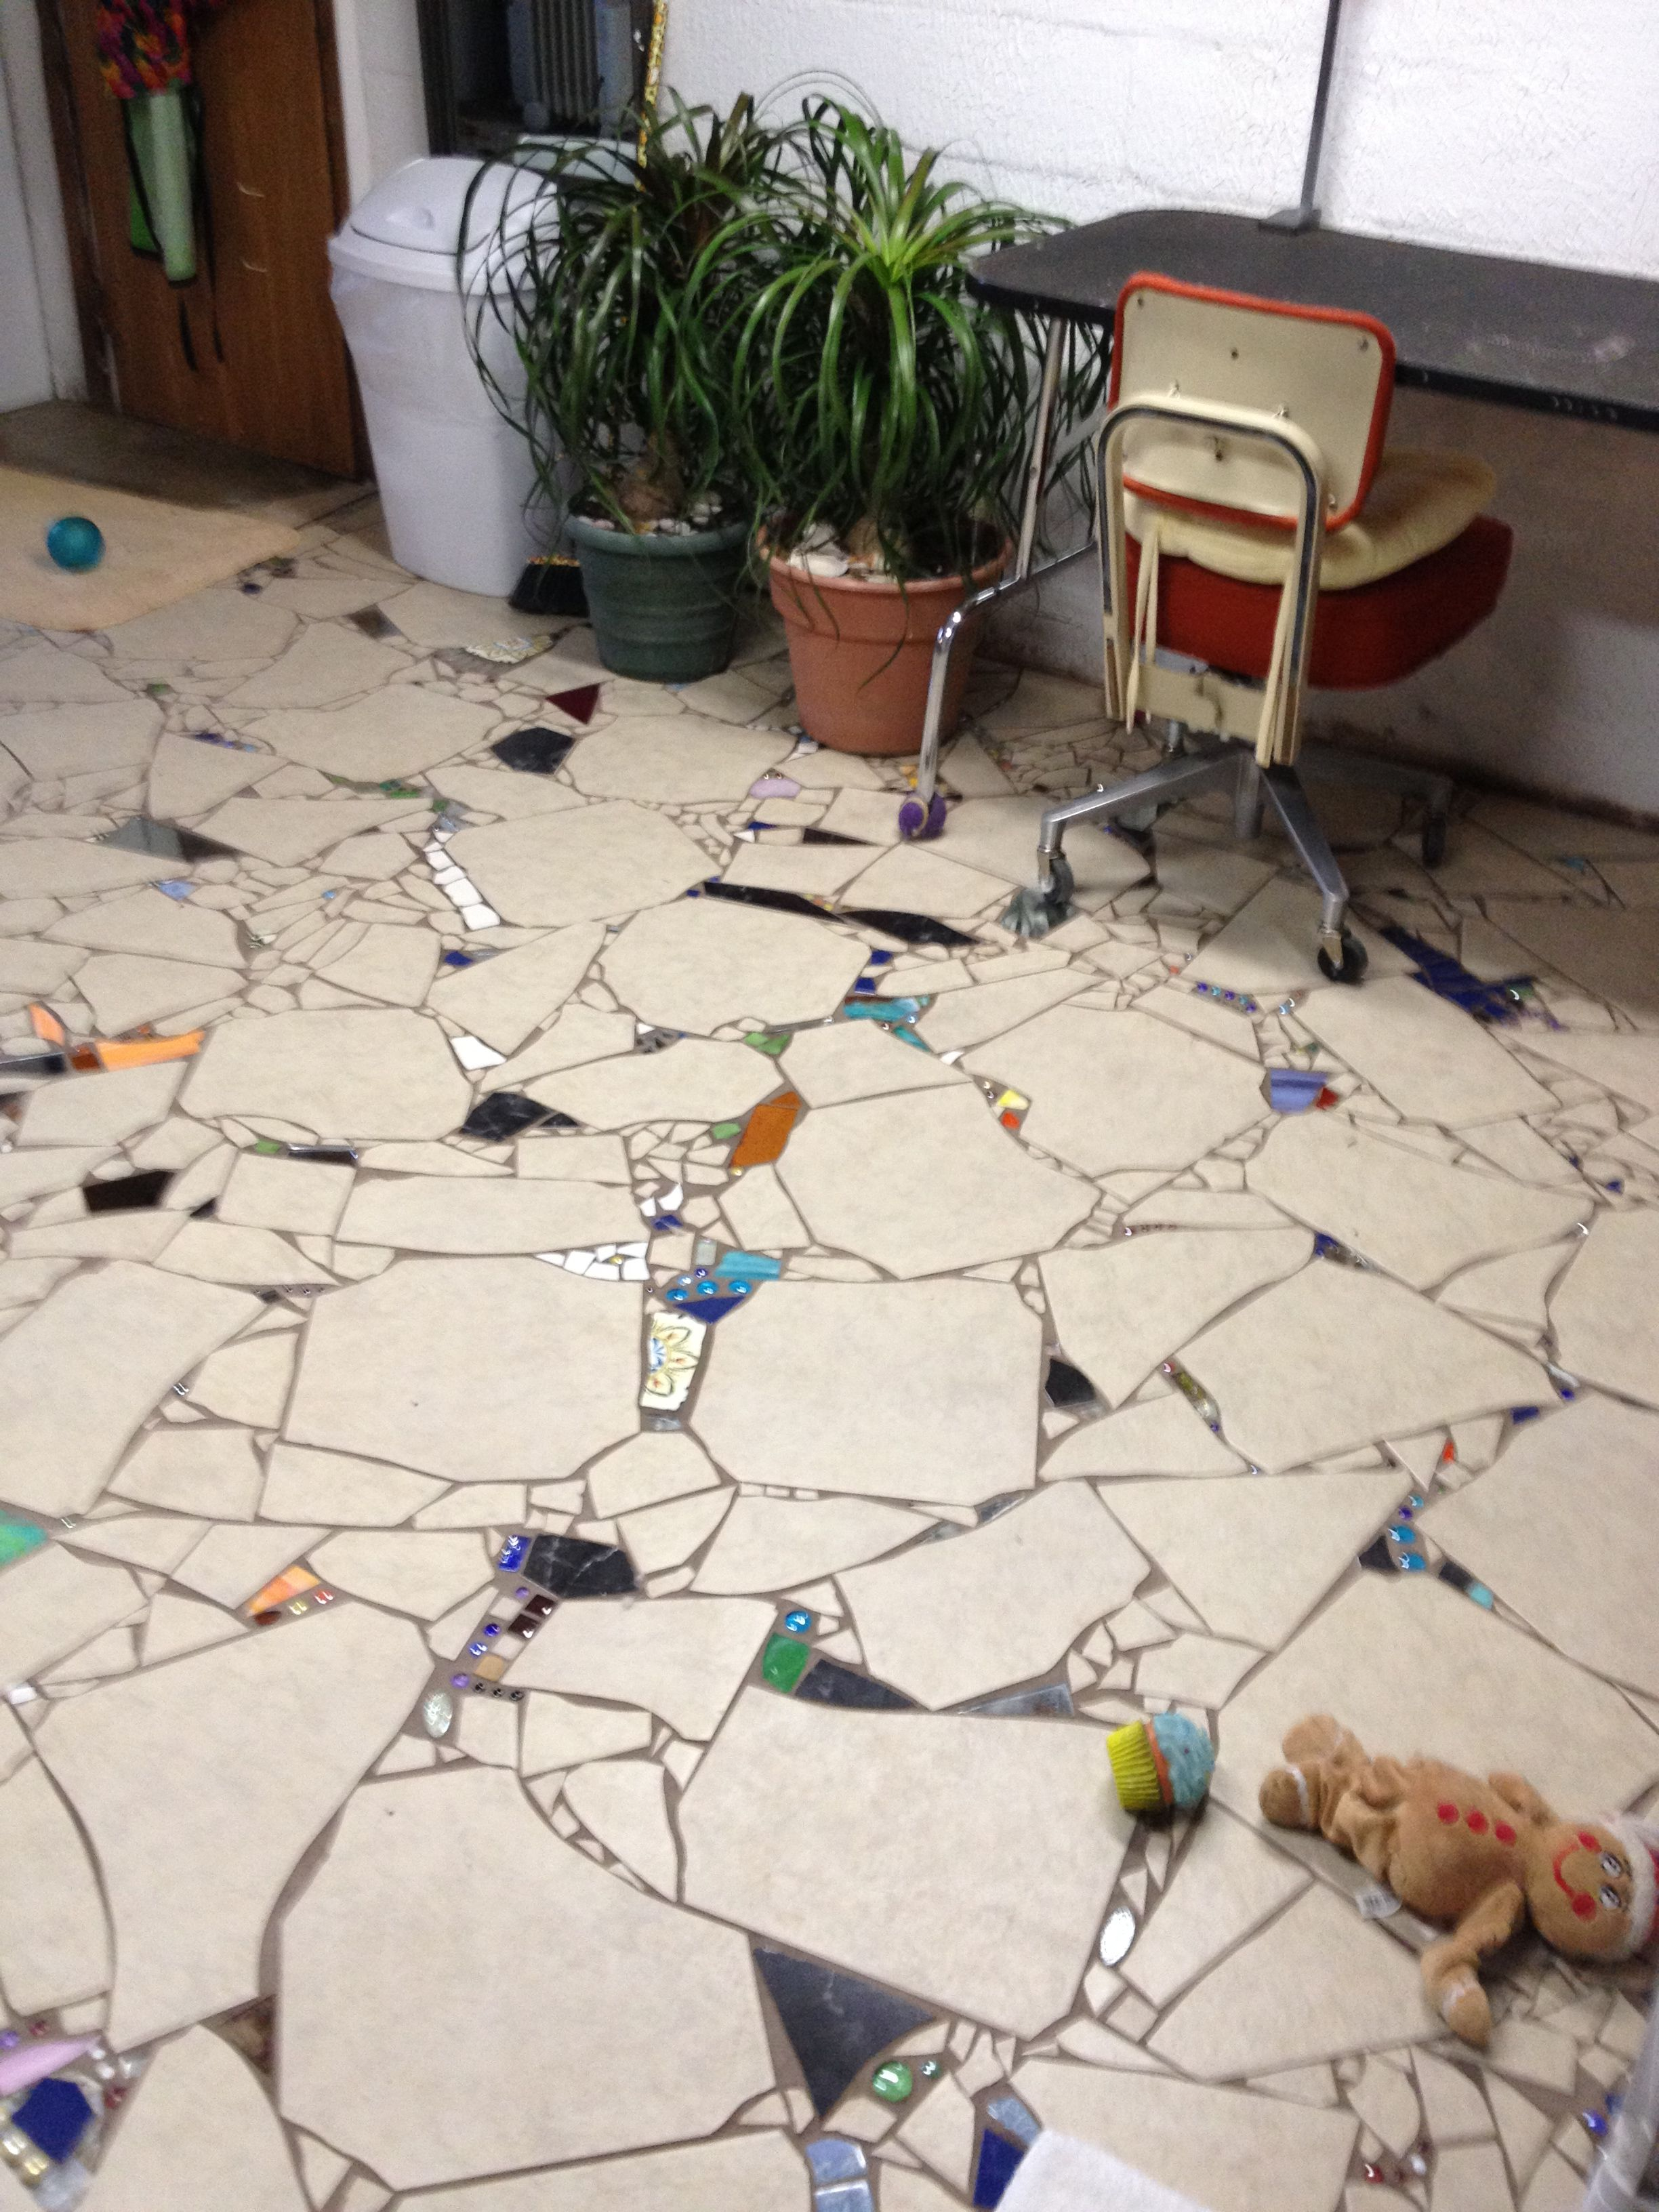 Mosaic floor this is what we had planned to do in our condo mosaic floor this is what we had planned to do in our condo bathroom years ago solutioingenieria Choice Image